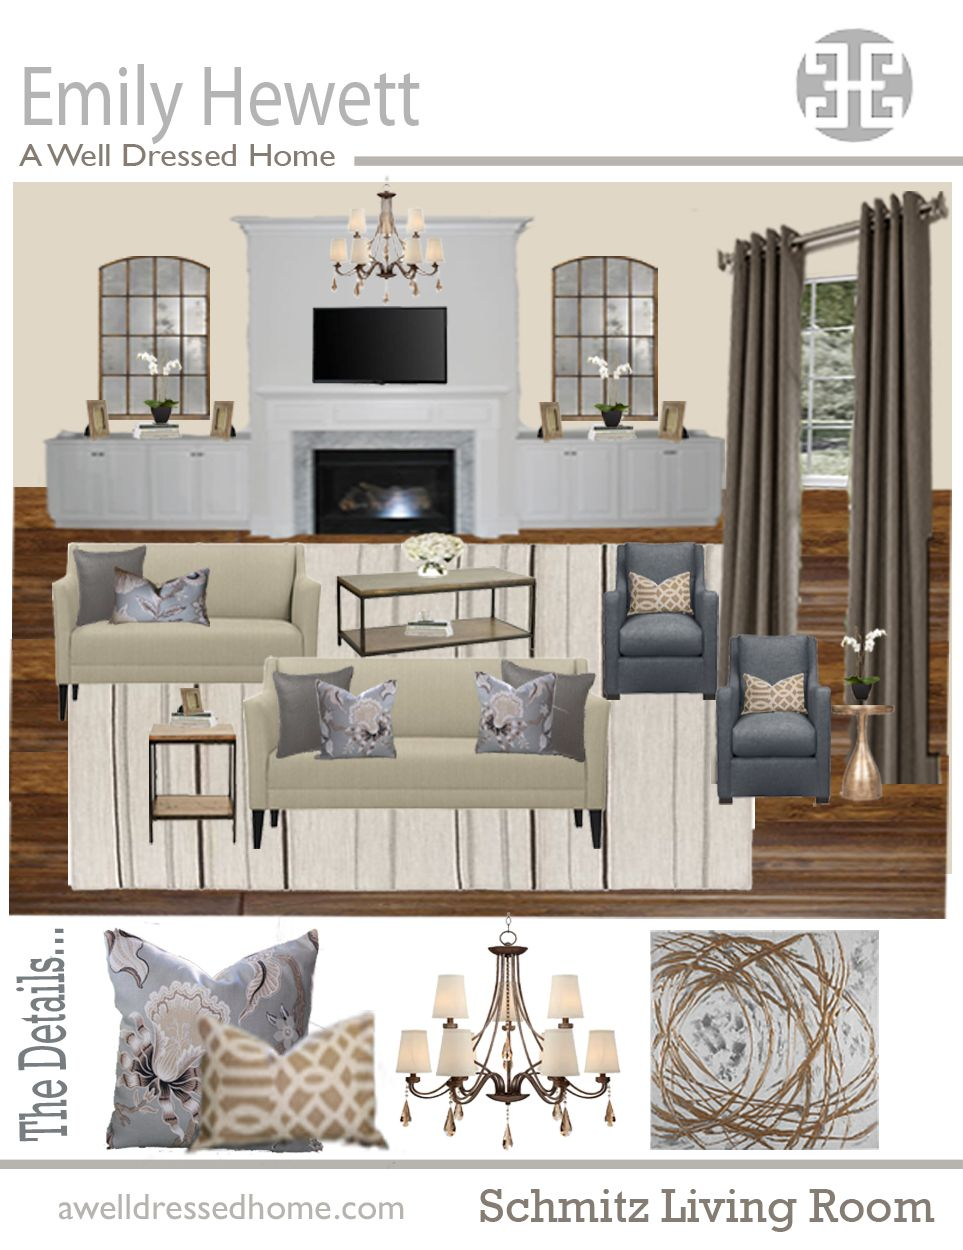 Design A Living Room Online For Free Adorable Schmitz Living Room Online Design Board  For The Home  Pinterest Inspiration Design